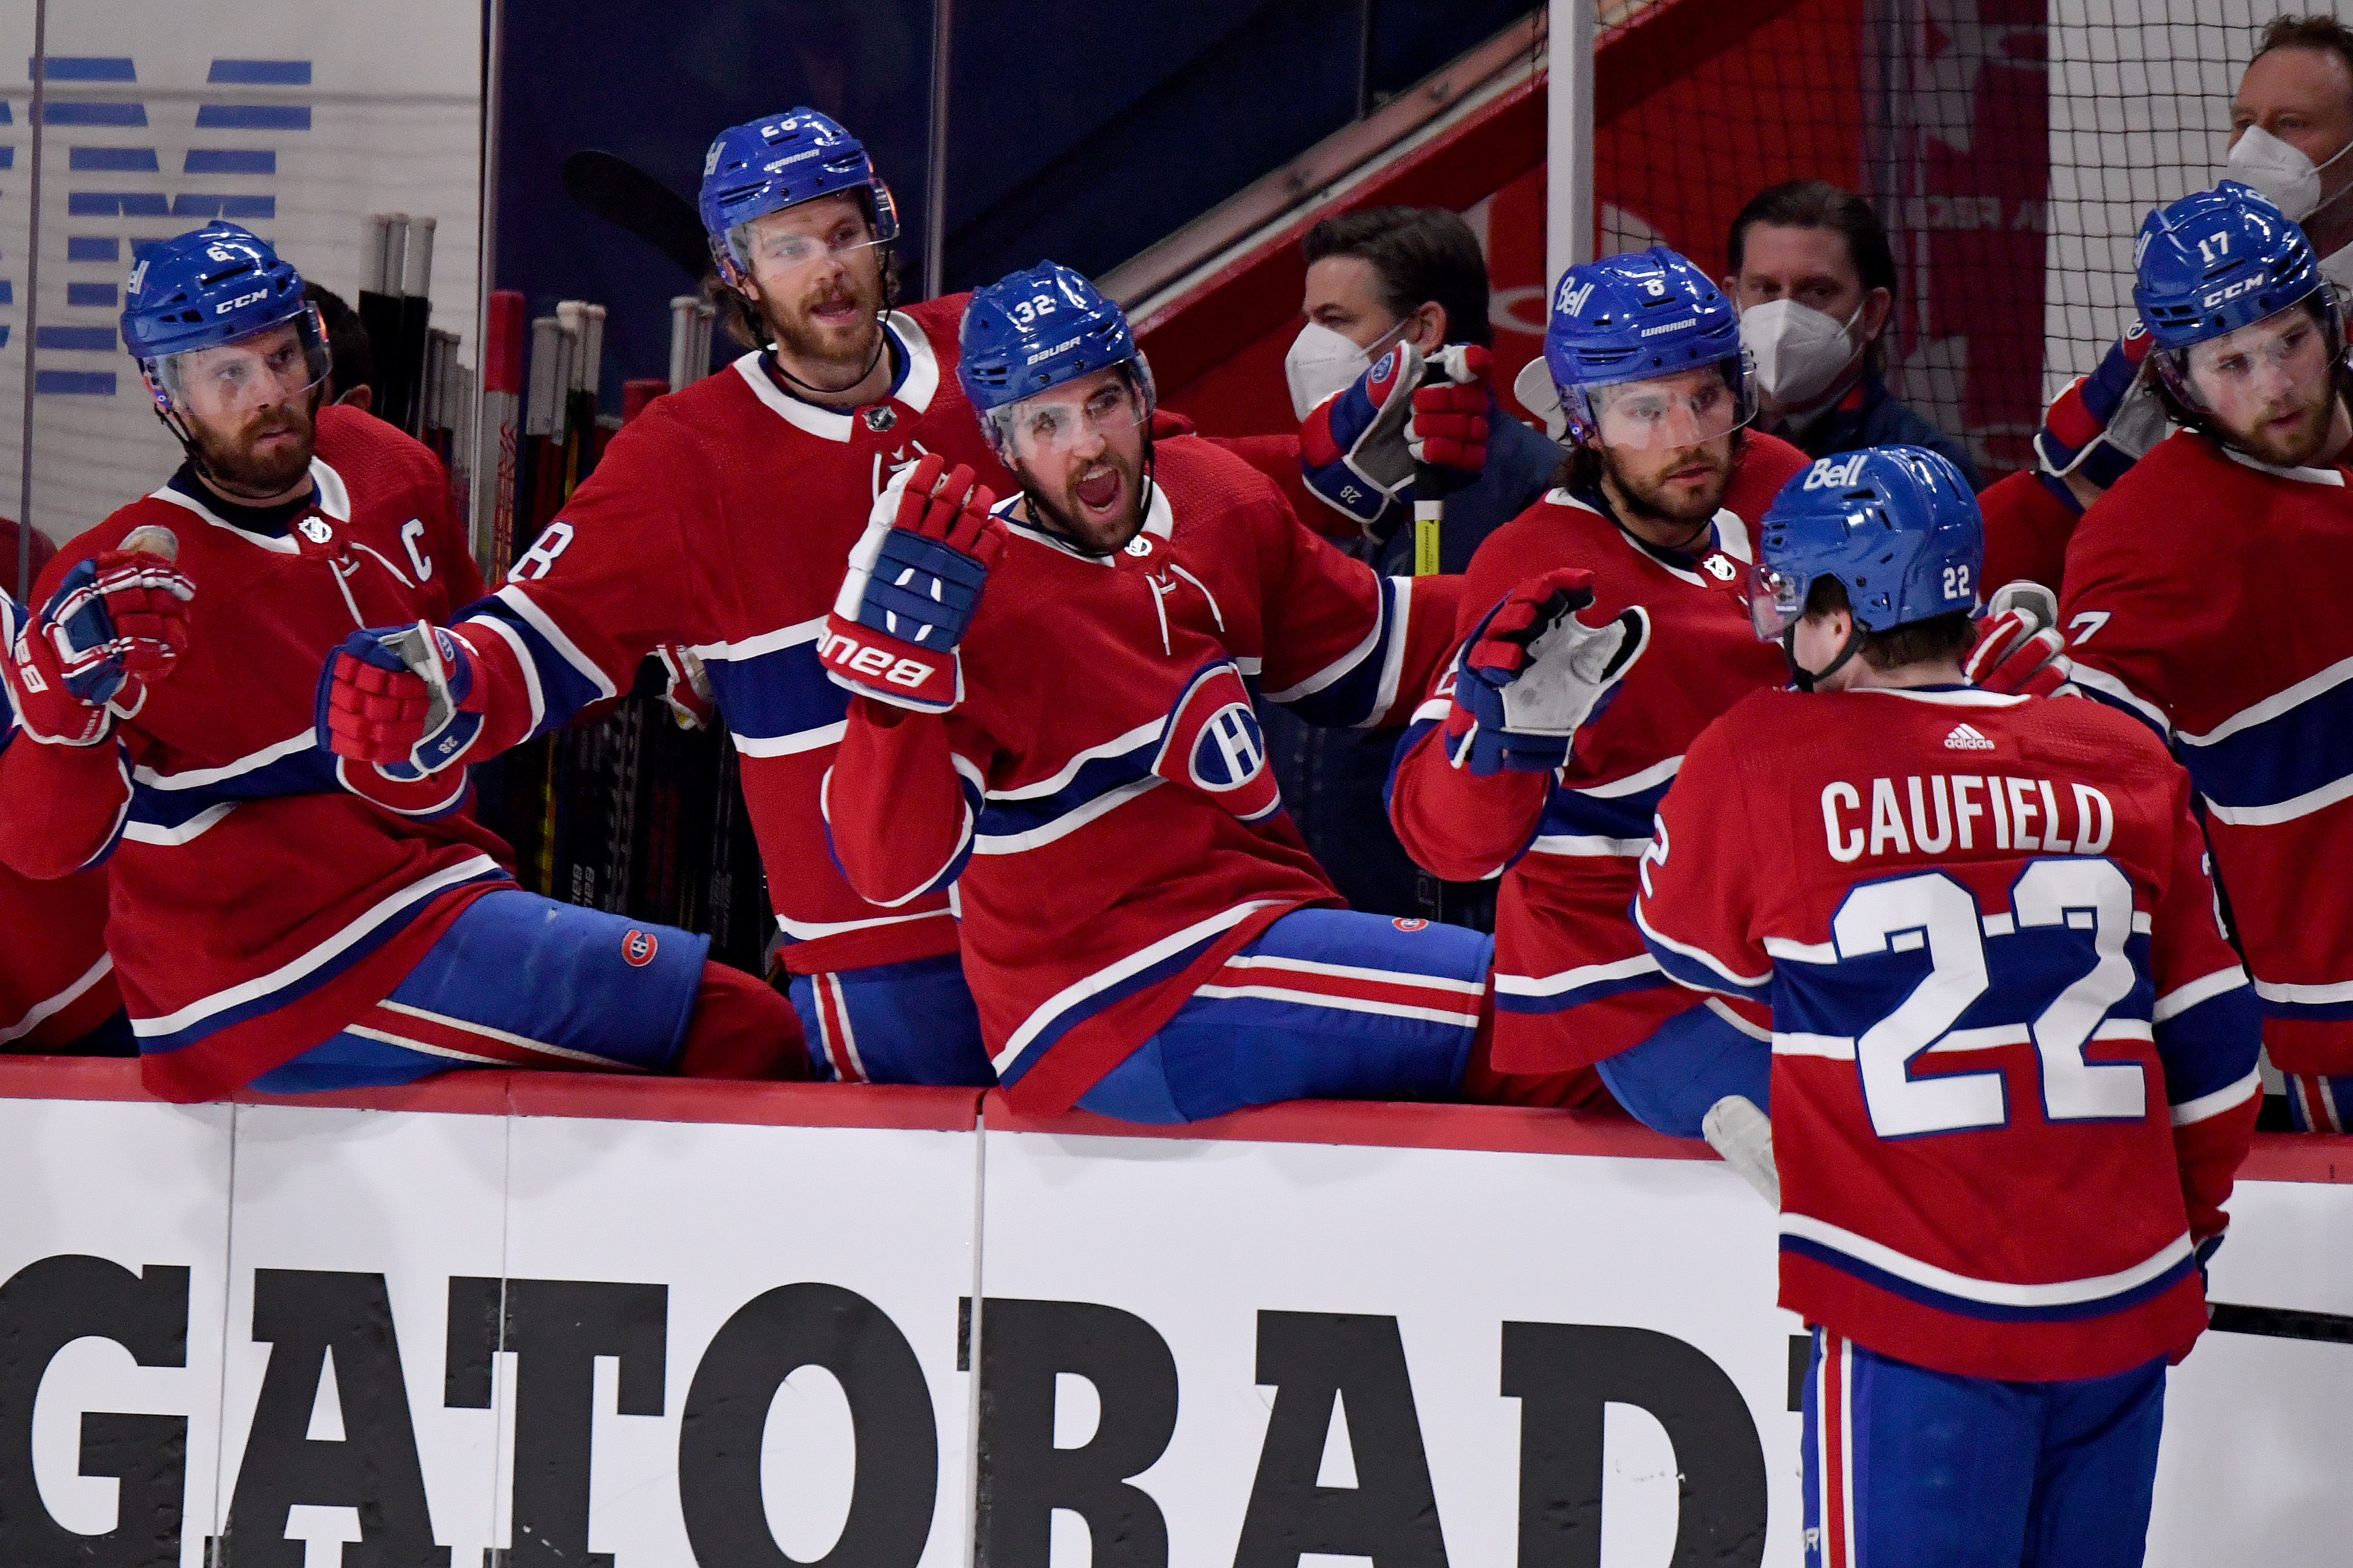 Cole Caufield #22 of the Montreal Canadiens celebrates with Jon Merrill #28, Erik Gustafsson #32 and Ben Chiarot #8 after scoring a goal against Robin Lehner #90 of the Vegas Golden Knights during the second period in Game Six of the Stanley Cup Semifinals of the 2021 Stanley Cup Playoffs at Bell Centre on June 24, 2021 in Montreal, Quebec.